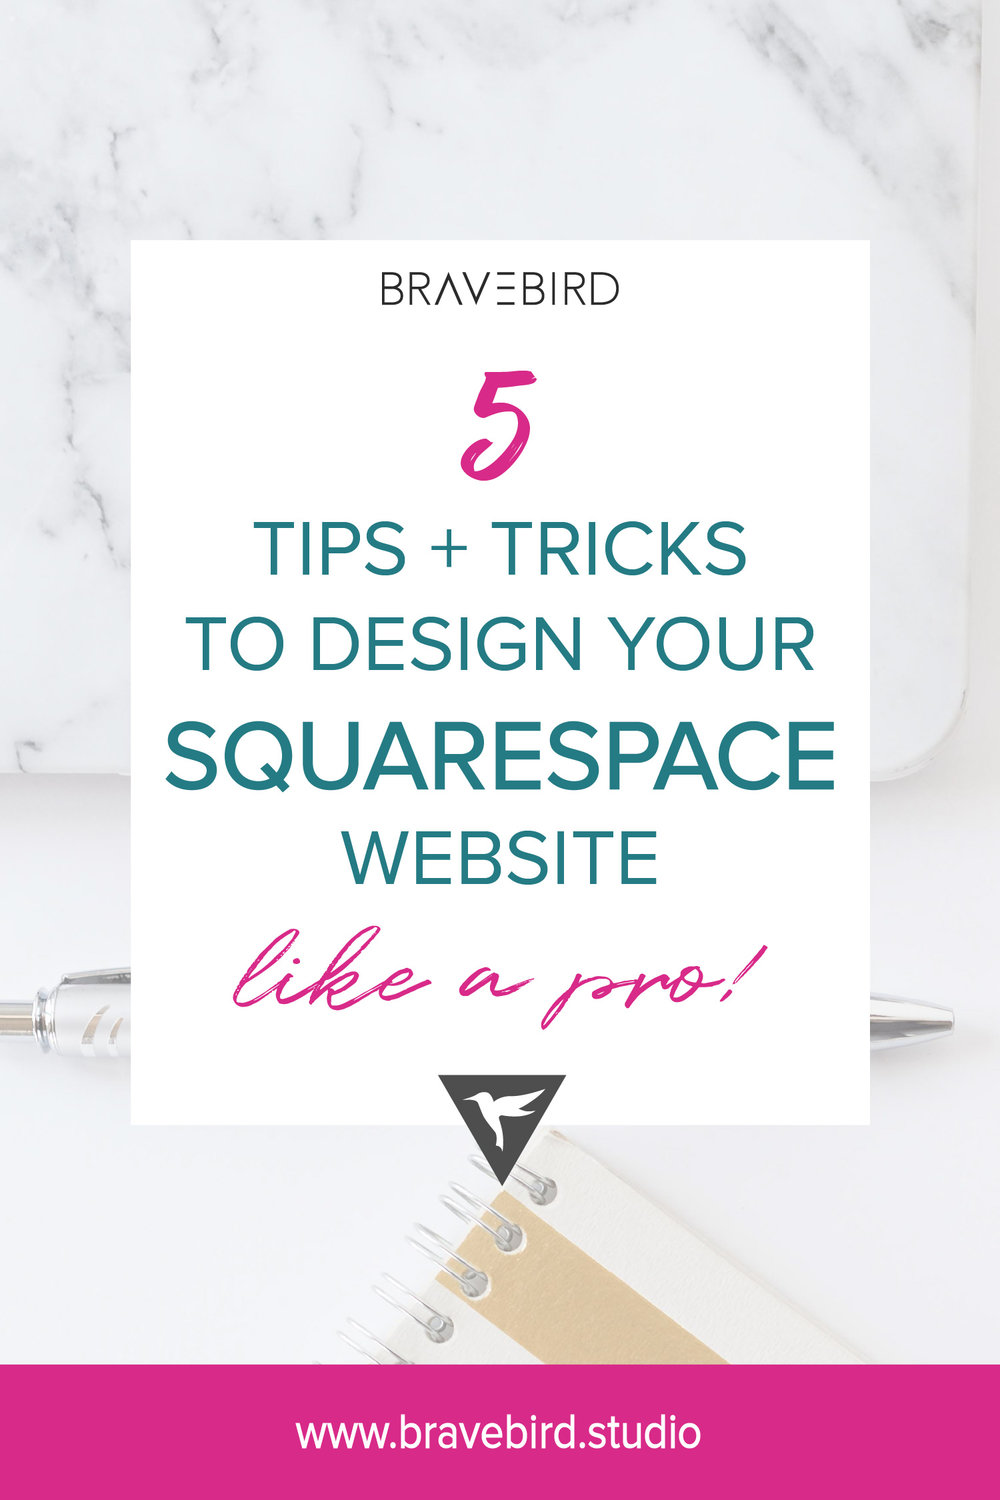 5 tips and tricks to design your Squarespace website like a pro! | Bravebird Blog